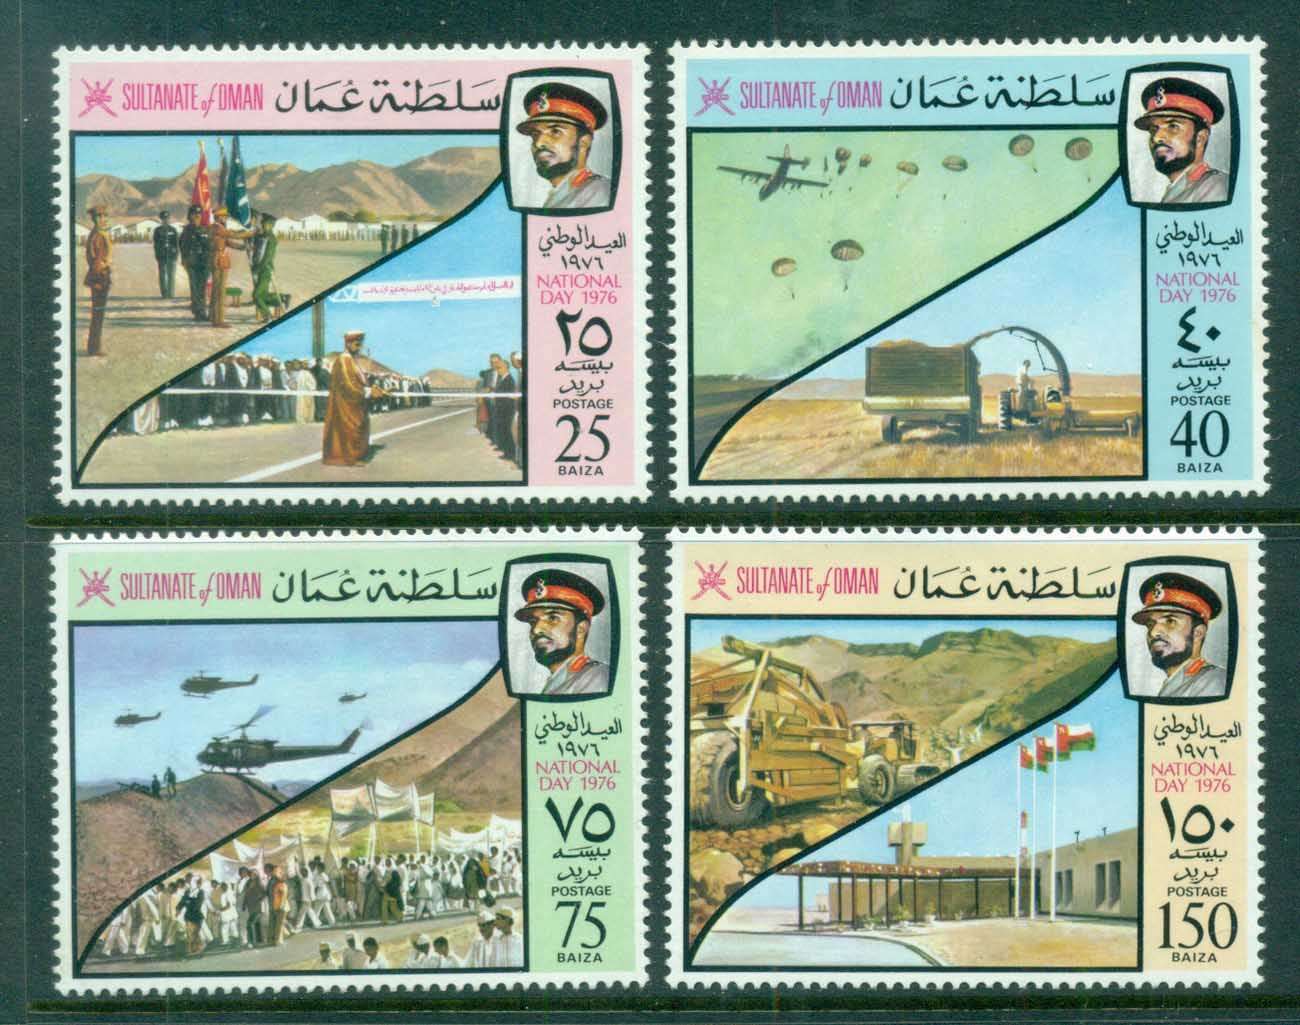 Oman 1976 National Day MLH